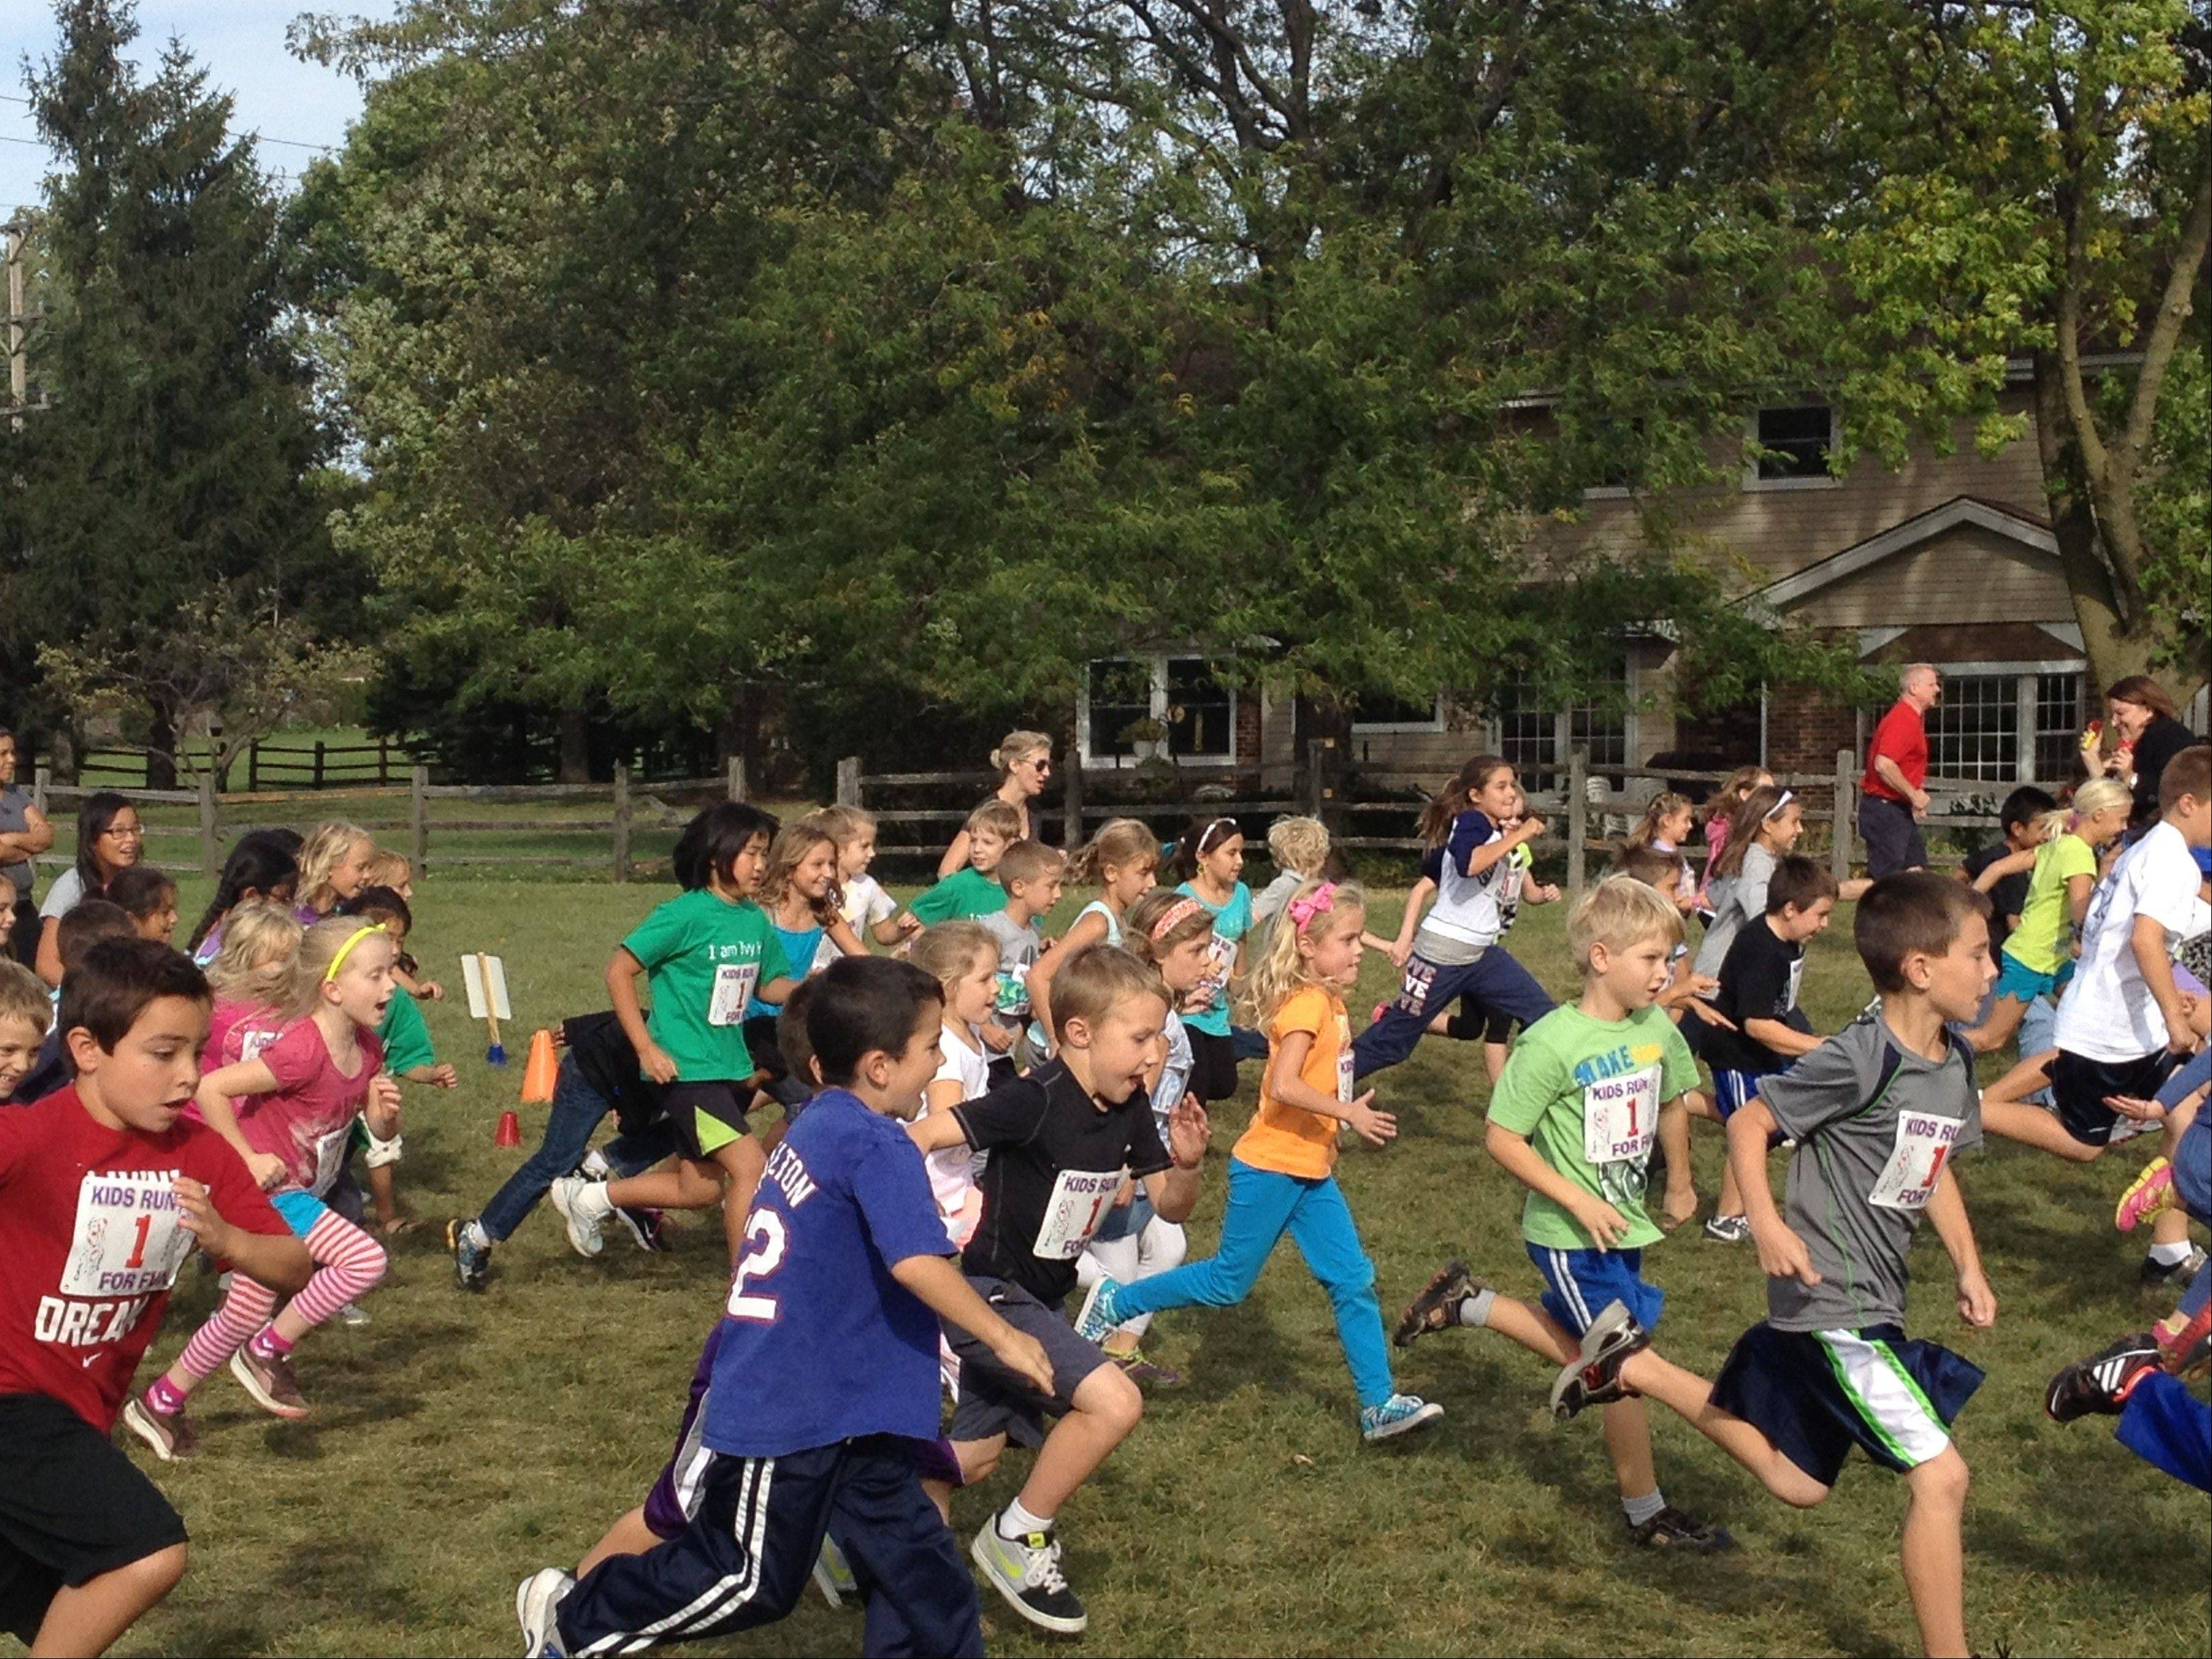 Students of Ivy Hill Elementary School, Arlington Heights, raised money for Special Olympics with a Fun Run Sept. 21.